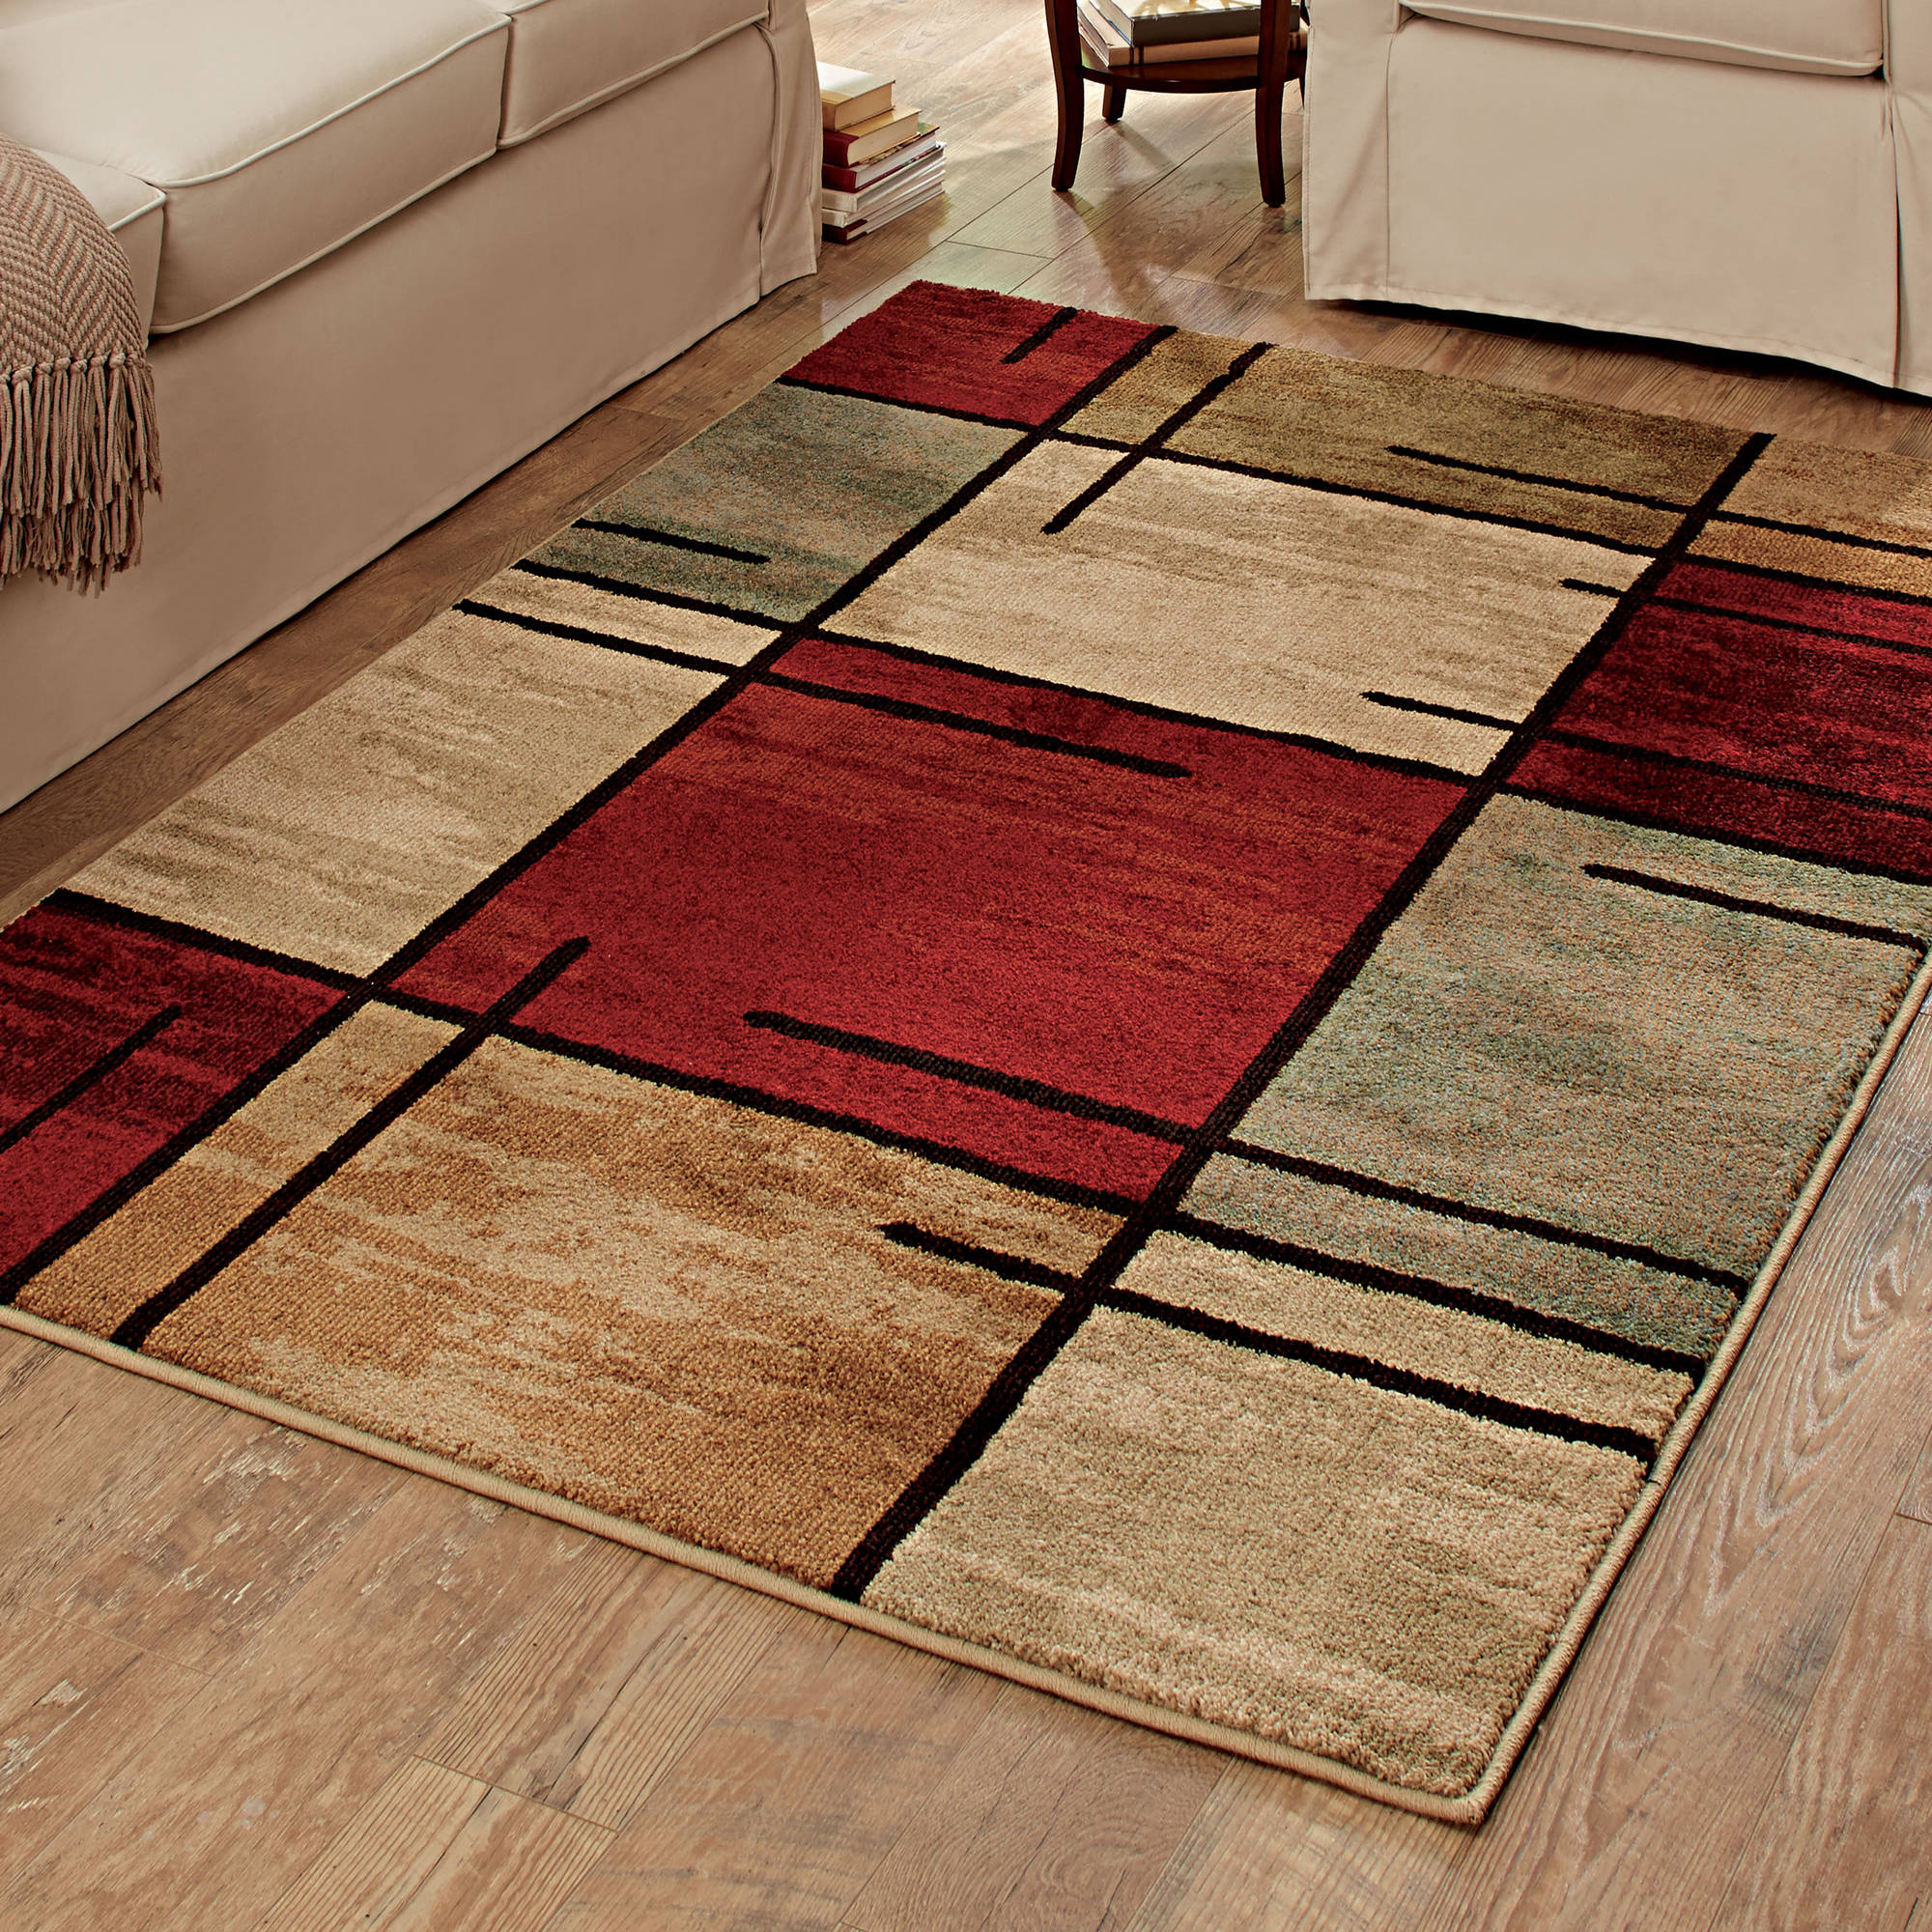 Better Homes And Gardens Spice Grid Area Rug. Product Variants Selector. Red